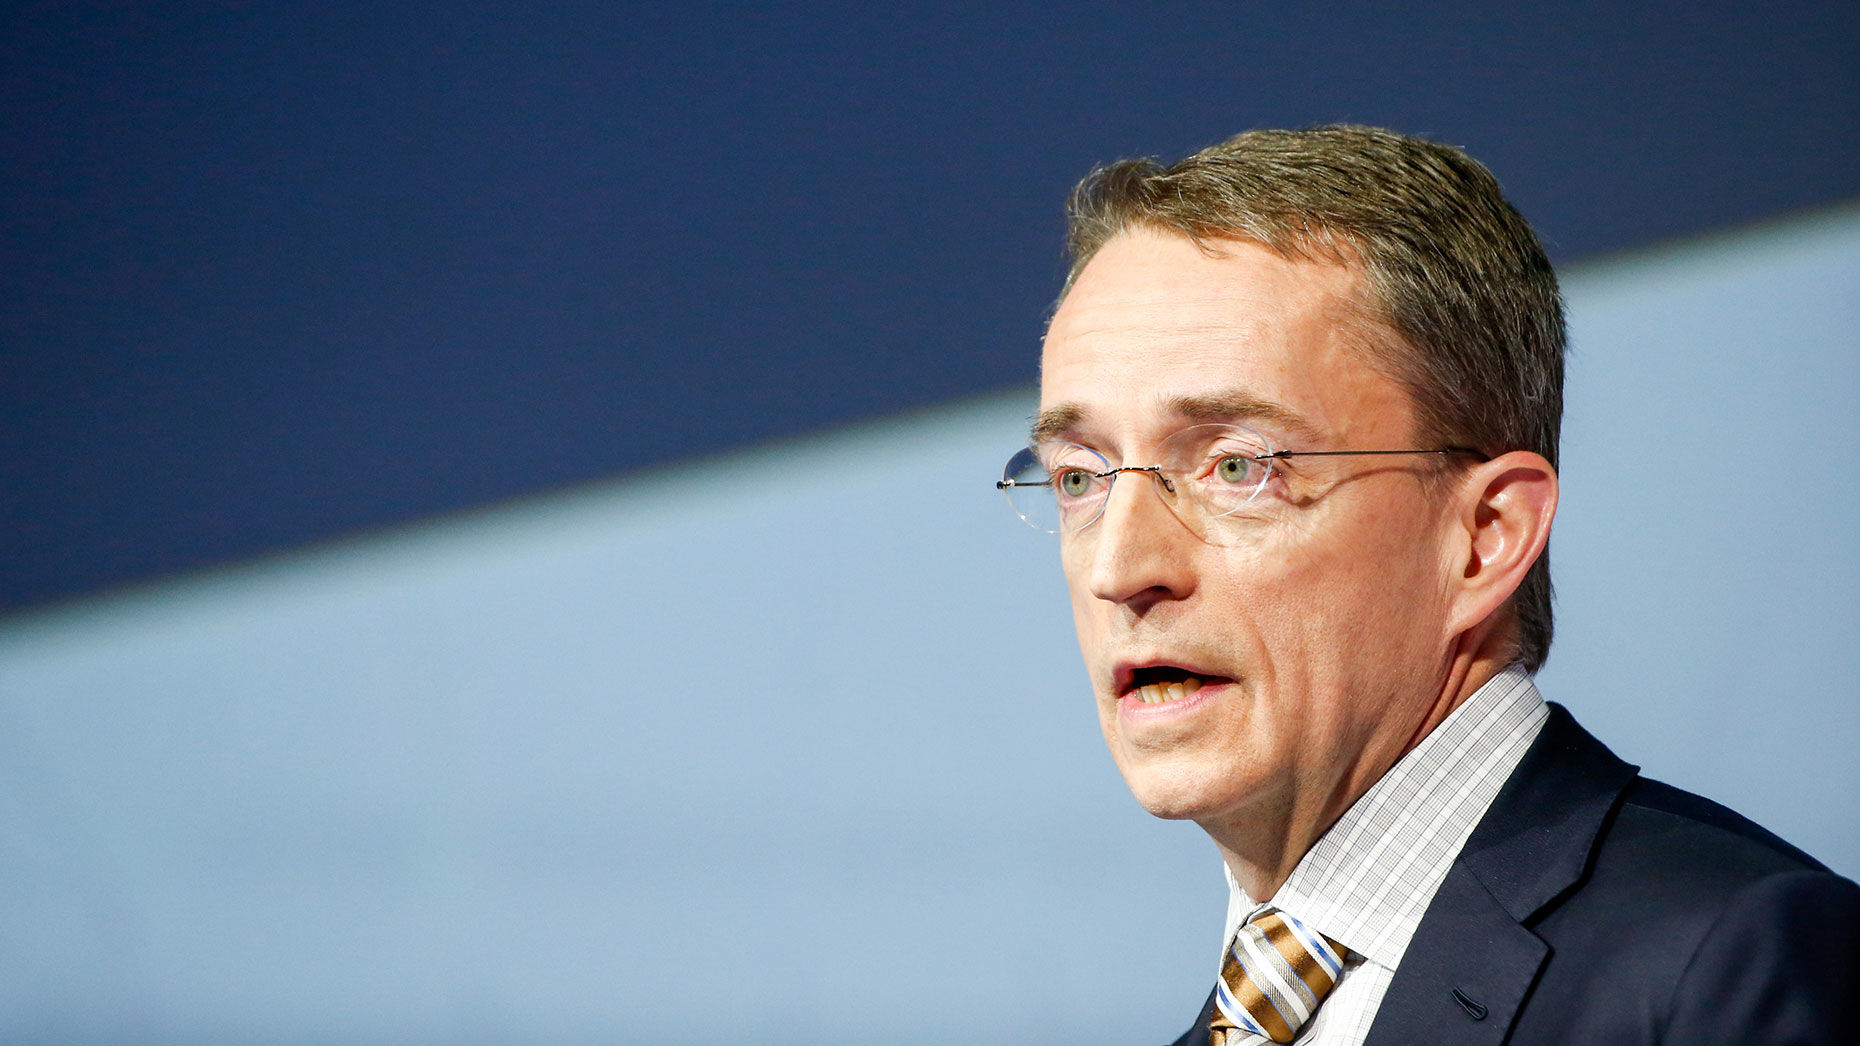 VMware CEO Pat Gelsinger. Photo by Bloomberg.